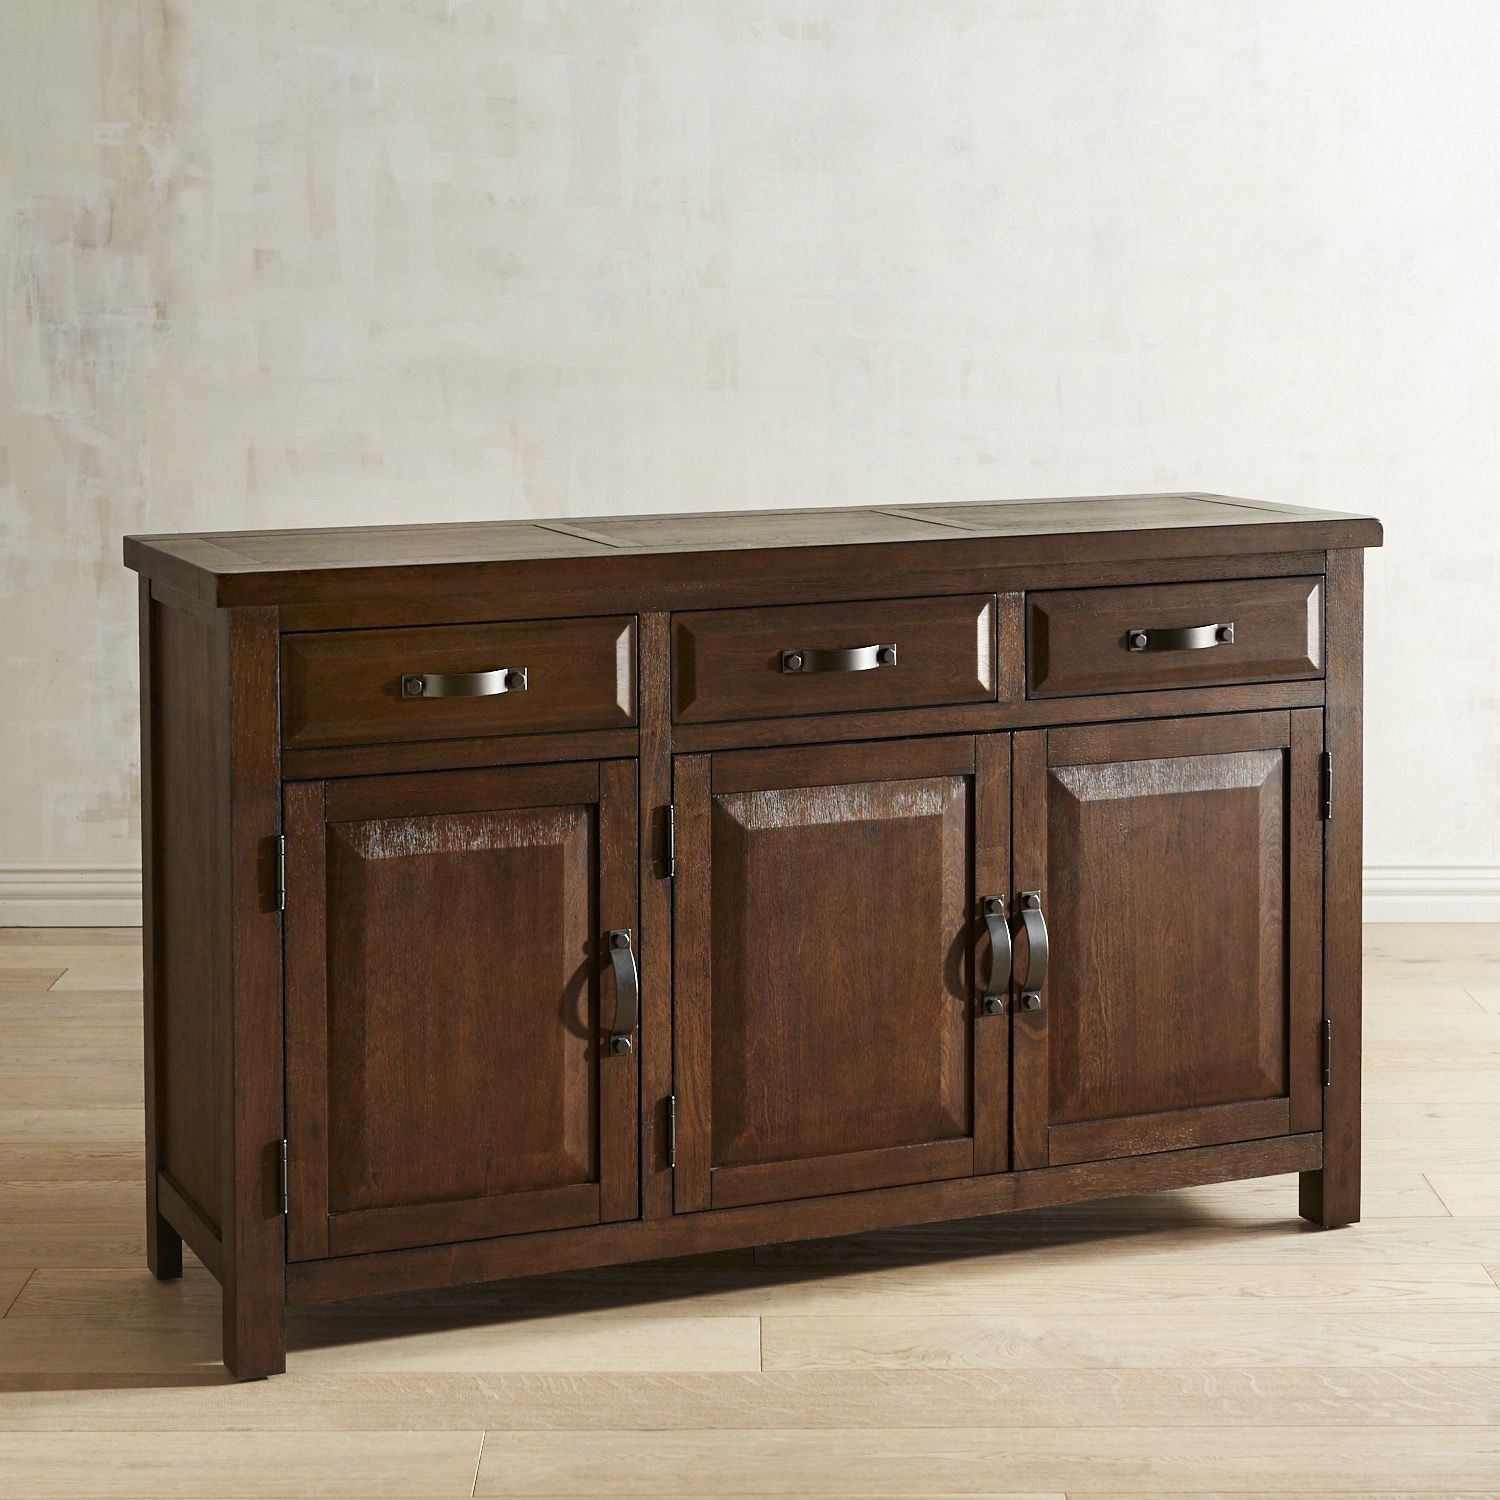 Dining Room Sideboards And Buffets: Furniture: Interesting Buffets And Sideboards For Home